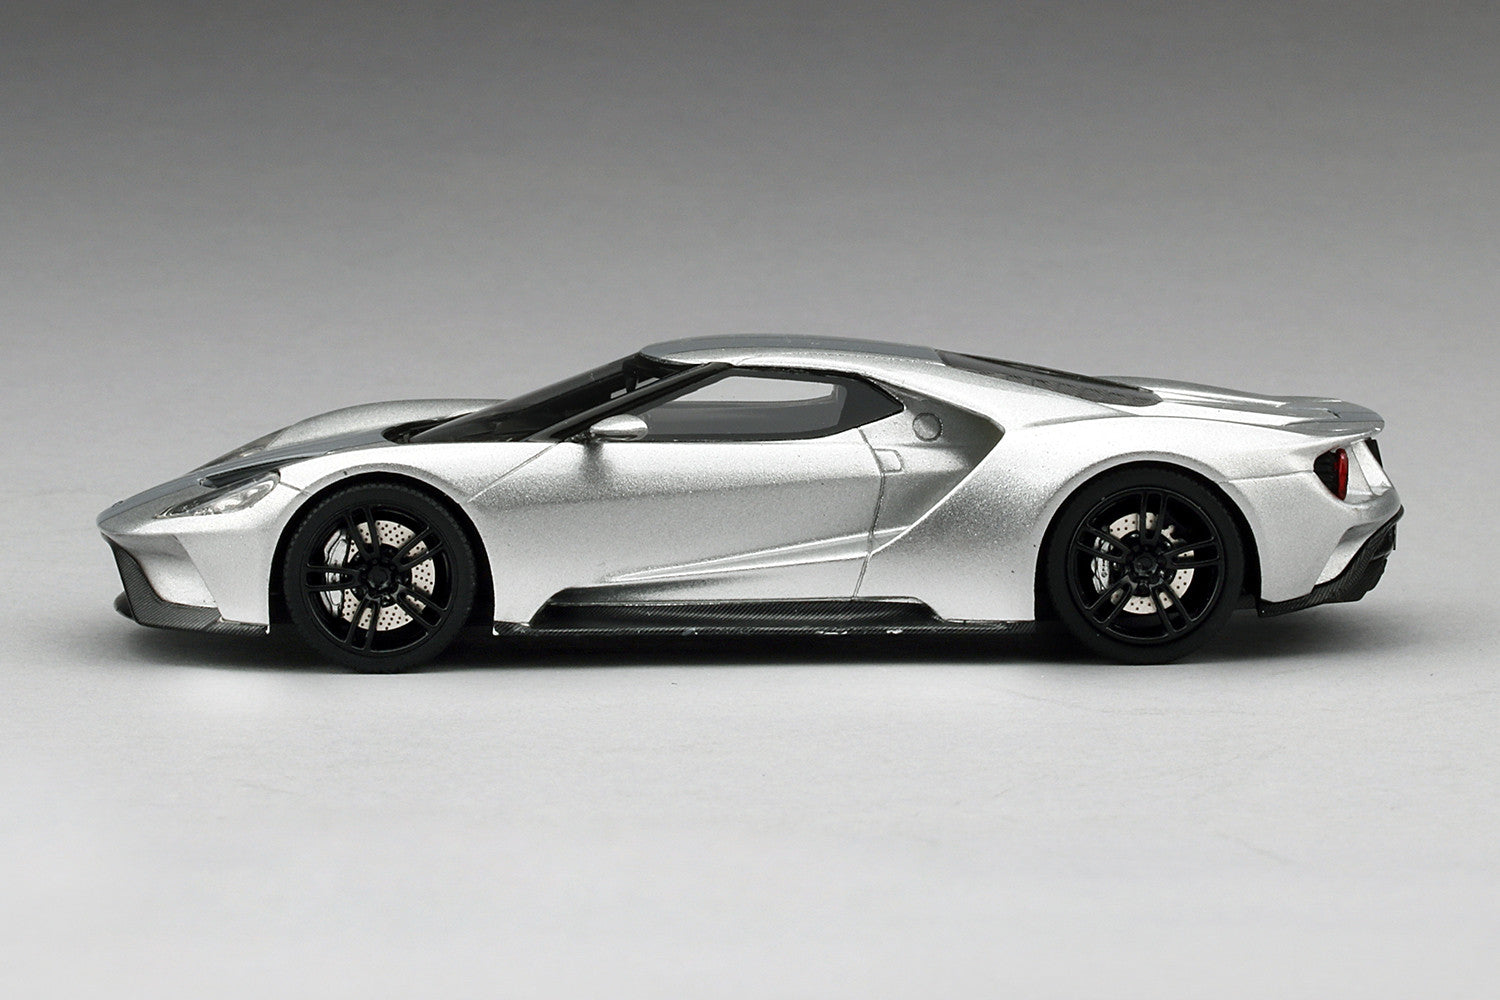 Ford GT 2015 Chicago Auto Show | 1:43 Scale Model | TSM ...